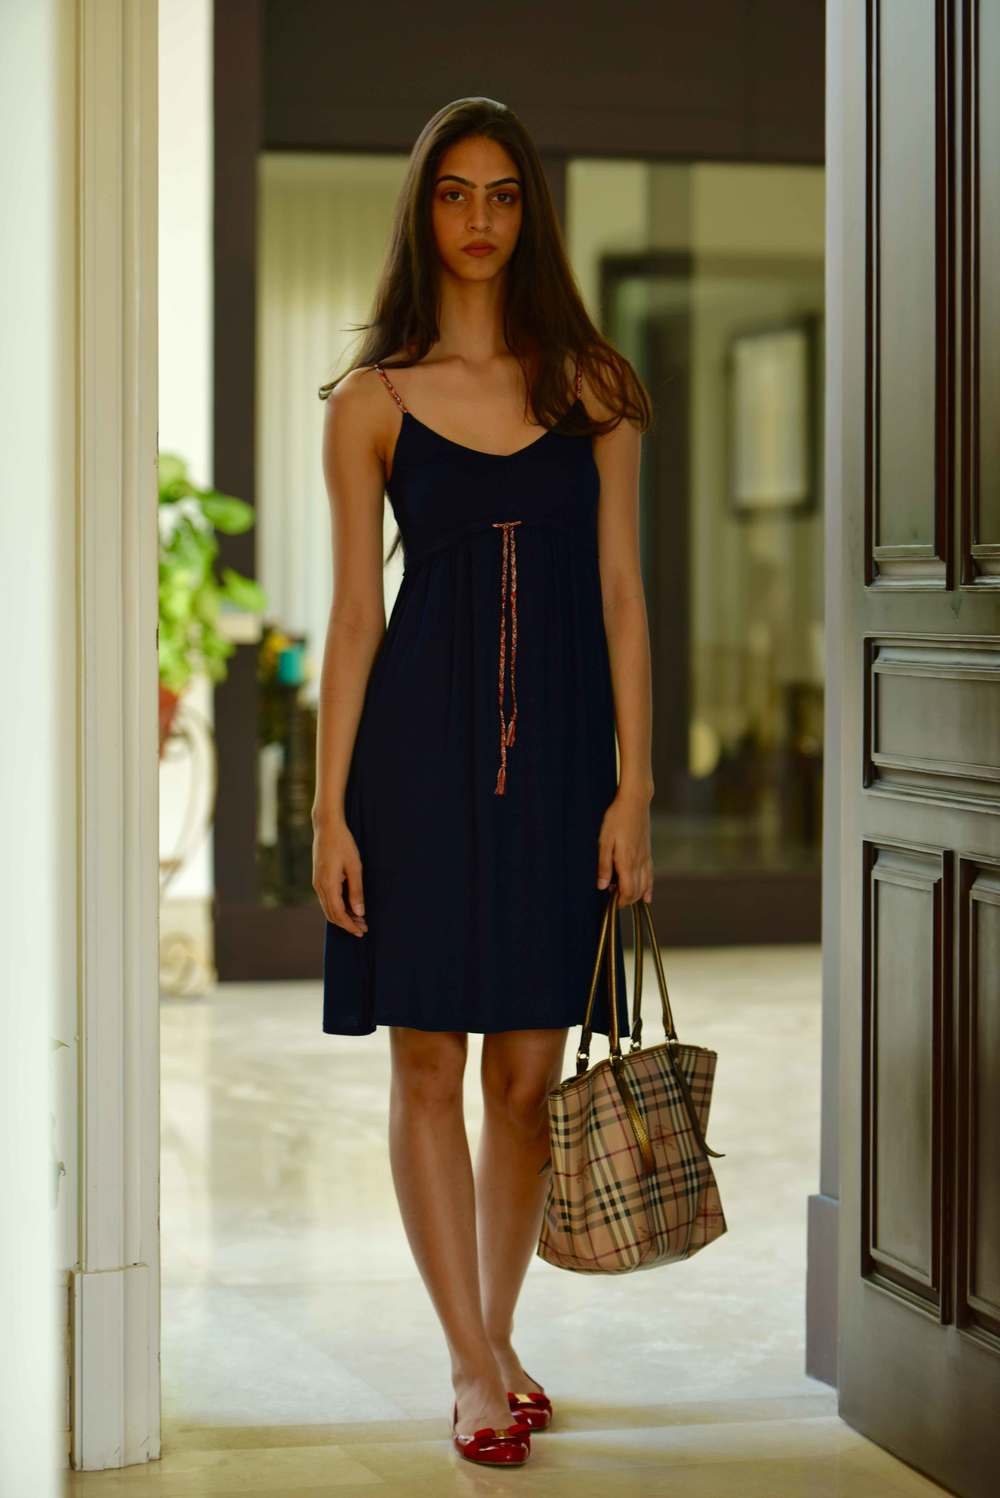 My friend Mannat in a Zara dress, Burberry tote and Ferragamo ballet flats. Image©gunjanvirk